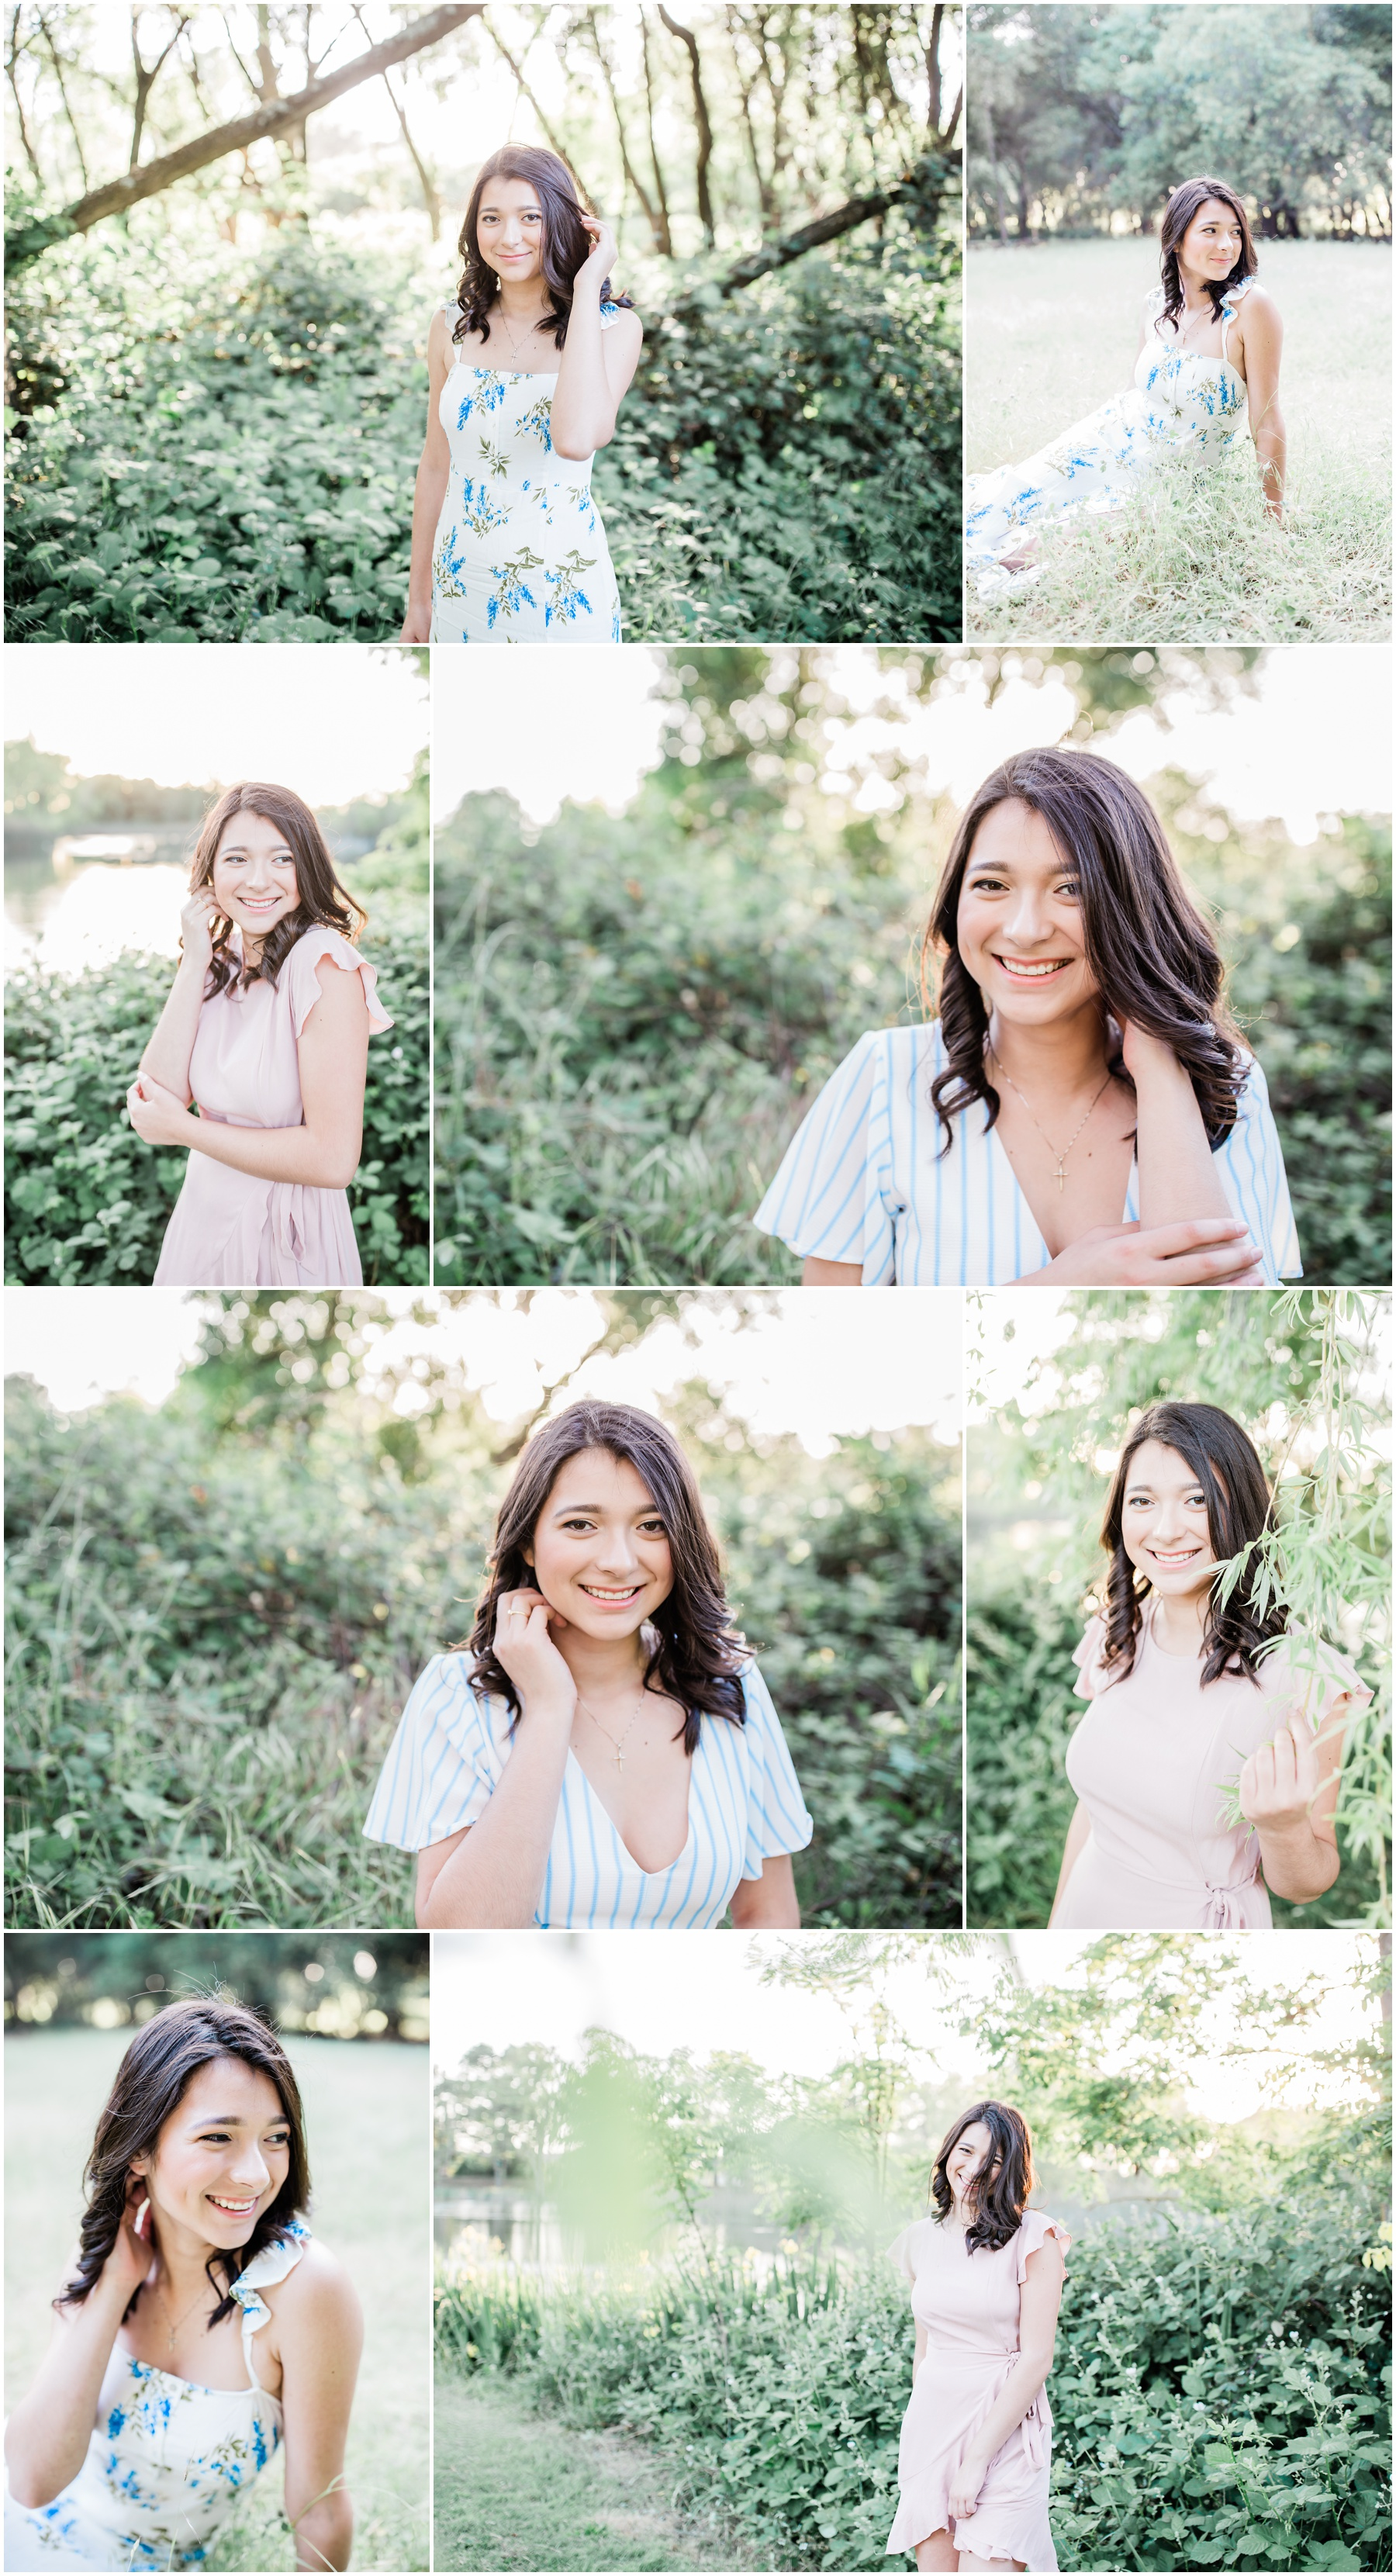 Senior Portraits, Senior Photos, Senior Pics, Lodi Photographer, Sacramento Photographer, Senior Portrait Session set in a rustic outdoor setting by a river at sunset